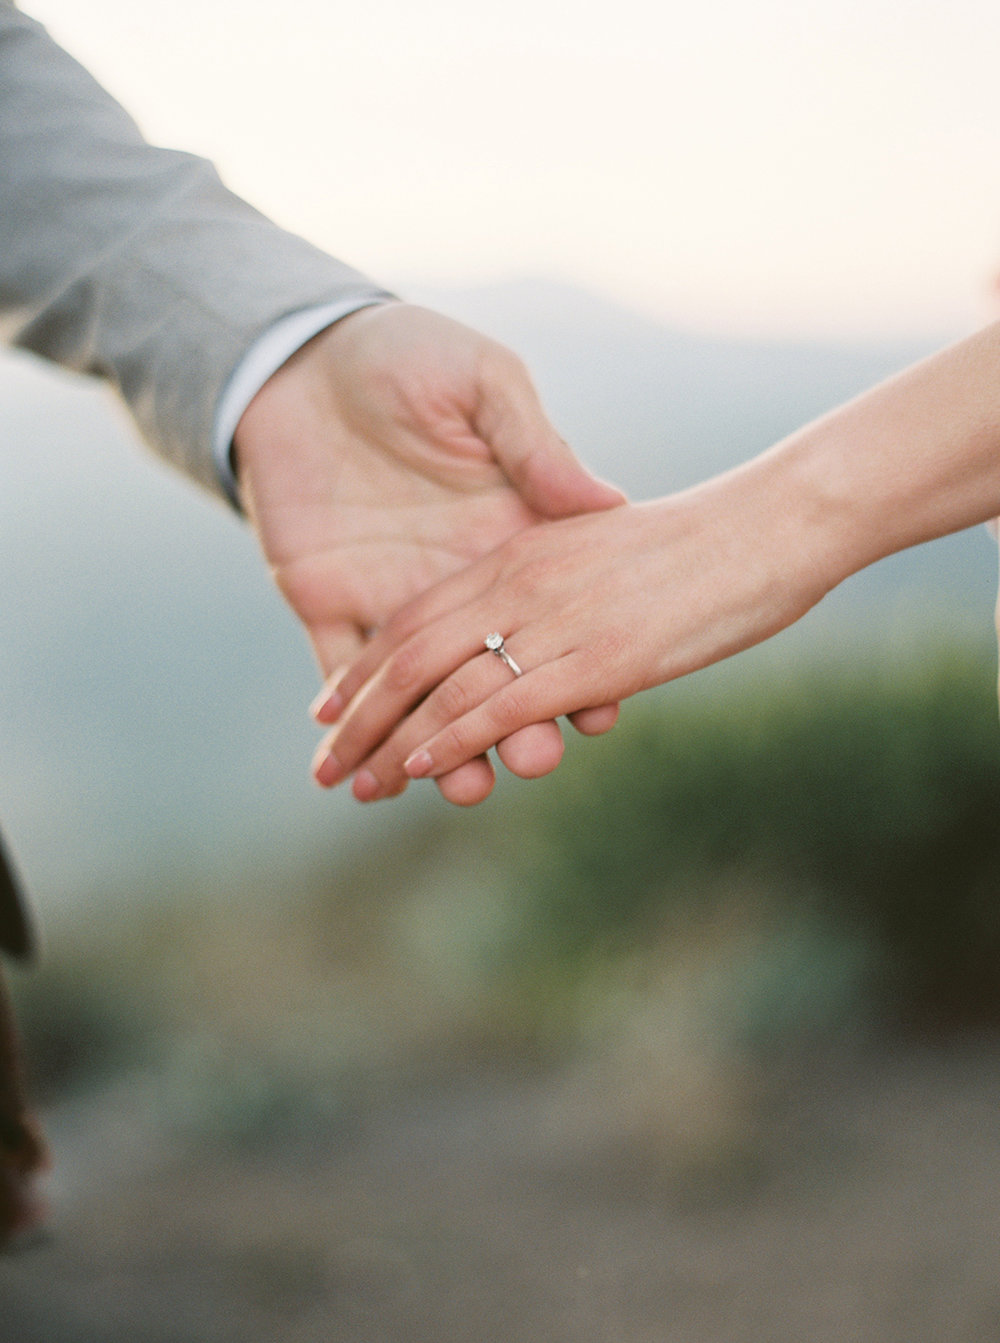 marin-headlands-engagement-session-luis-cecilia-17.html